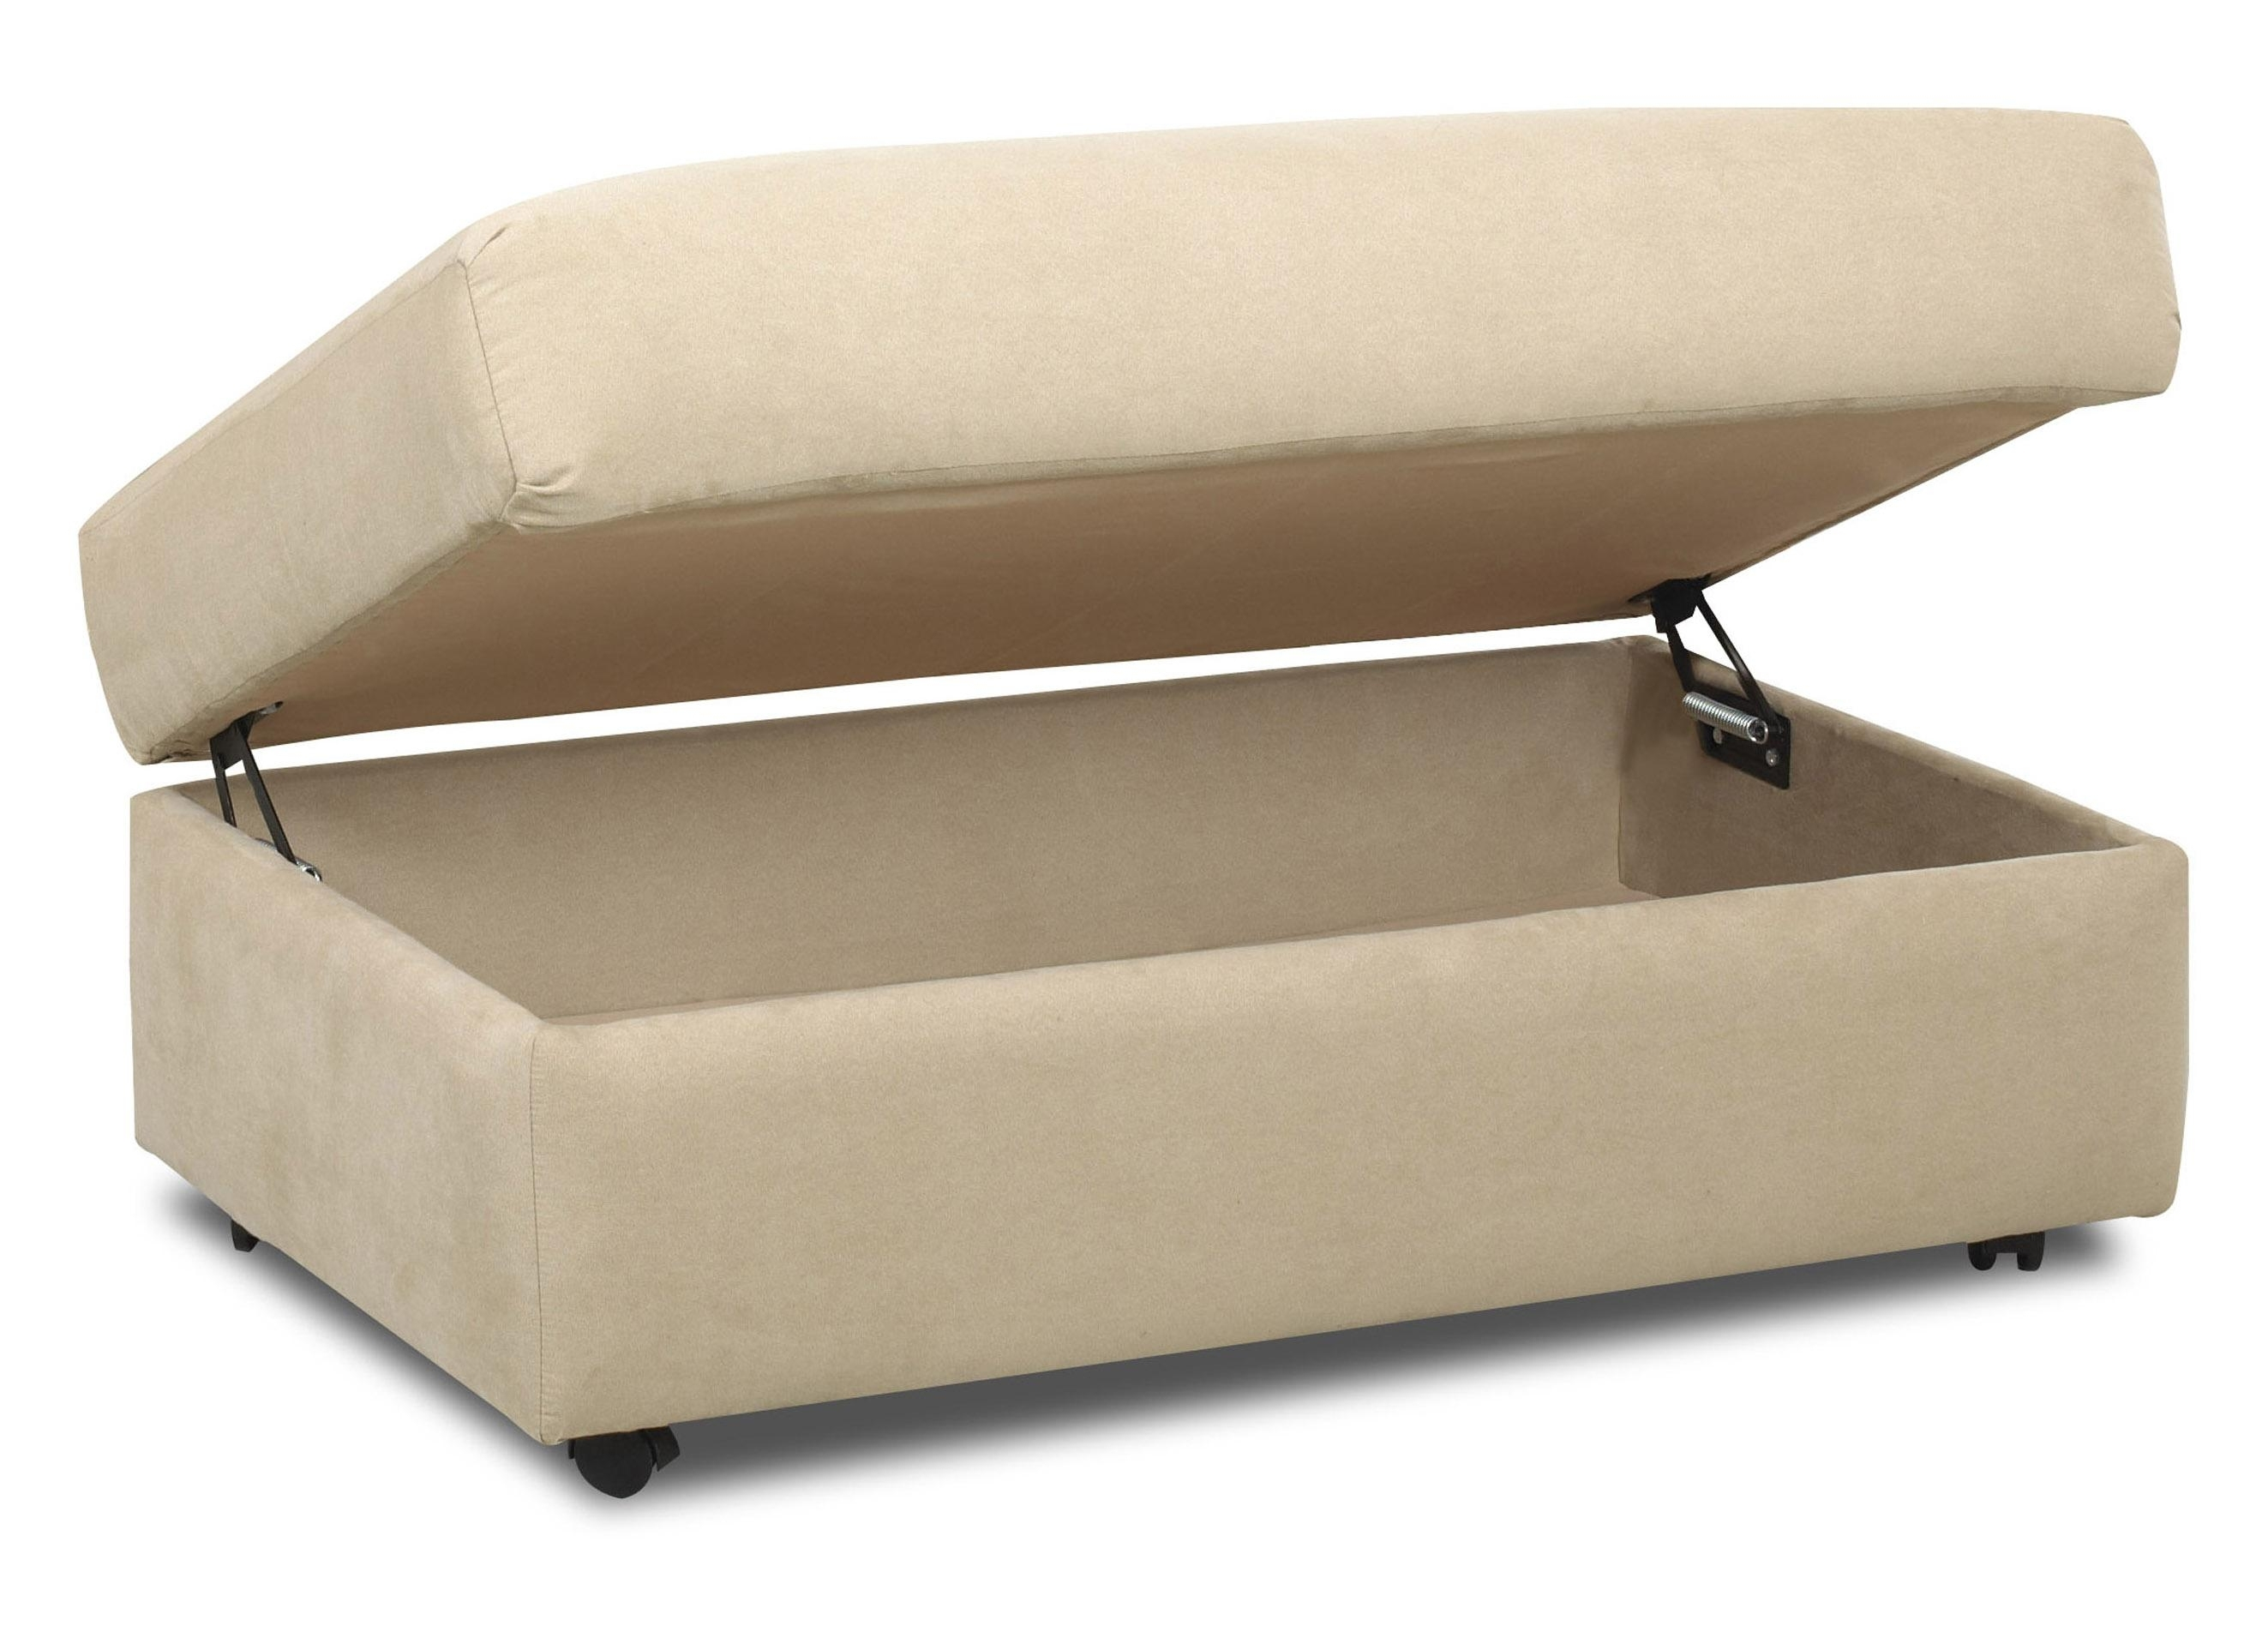 Home Design : Furniture. Rectangle Beige Storage Ottoman With Small with Ottomans With Wheels (Image 7 of 15)